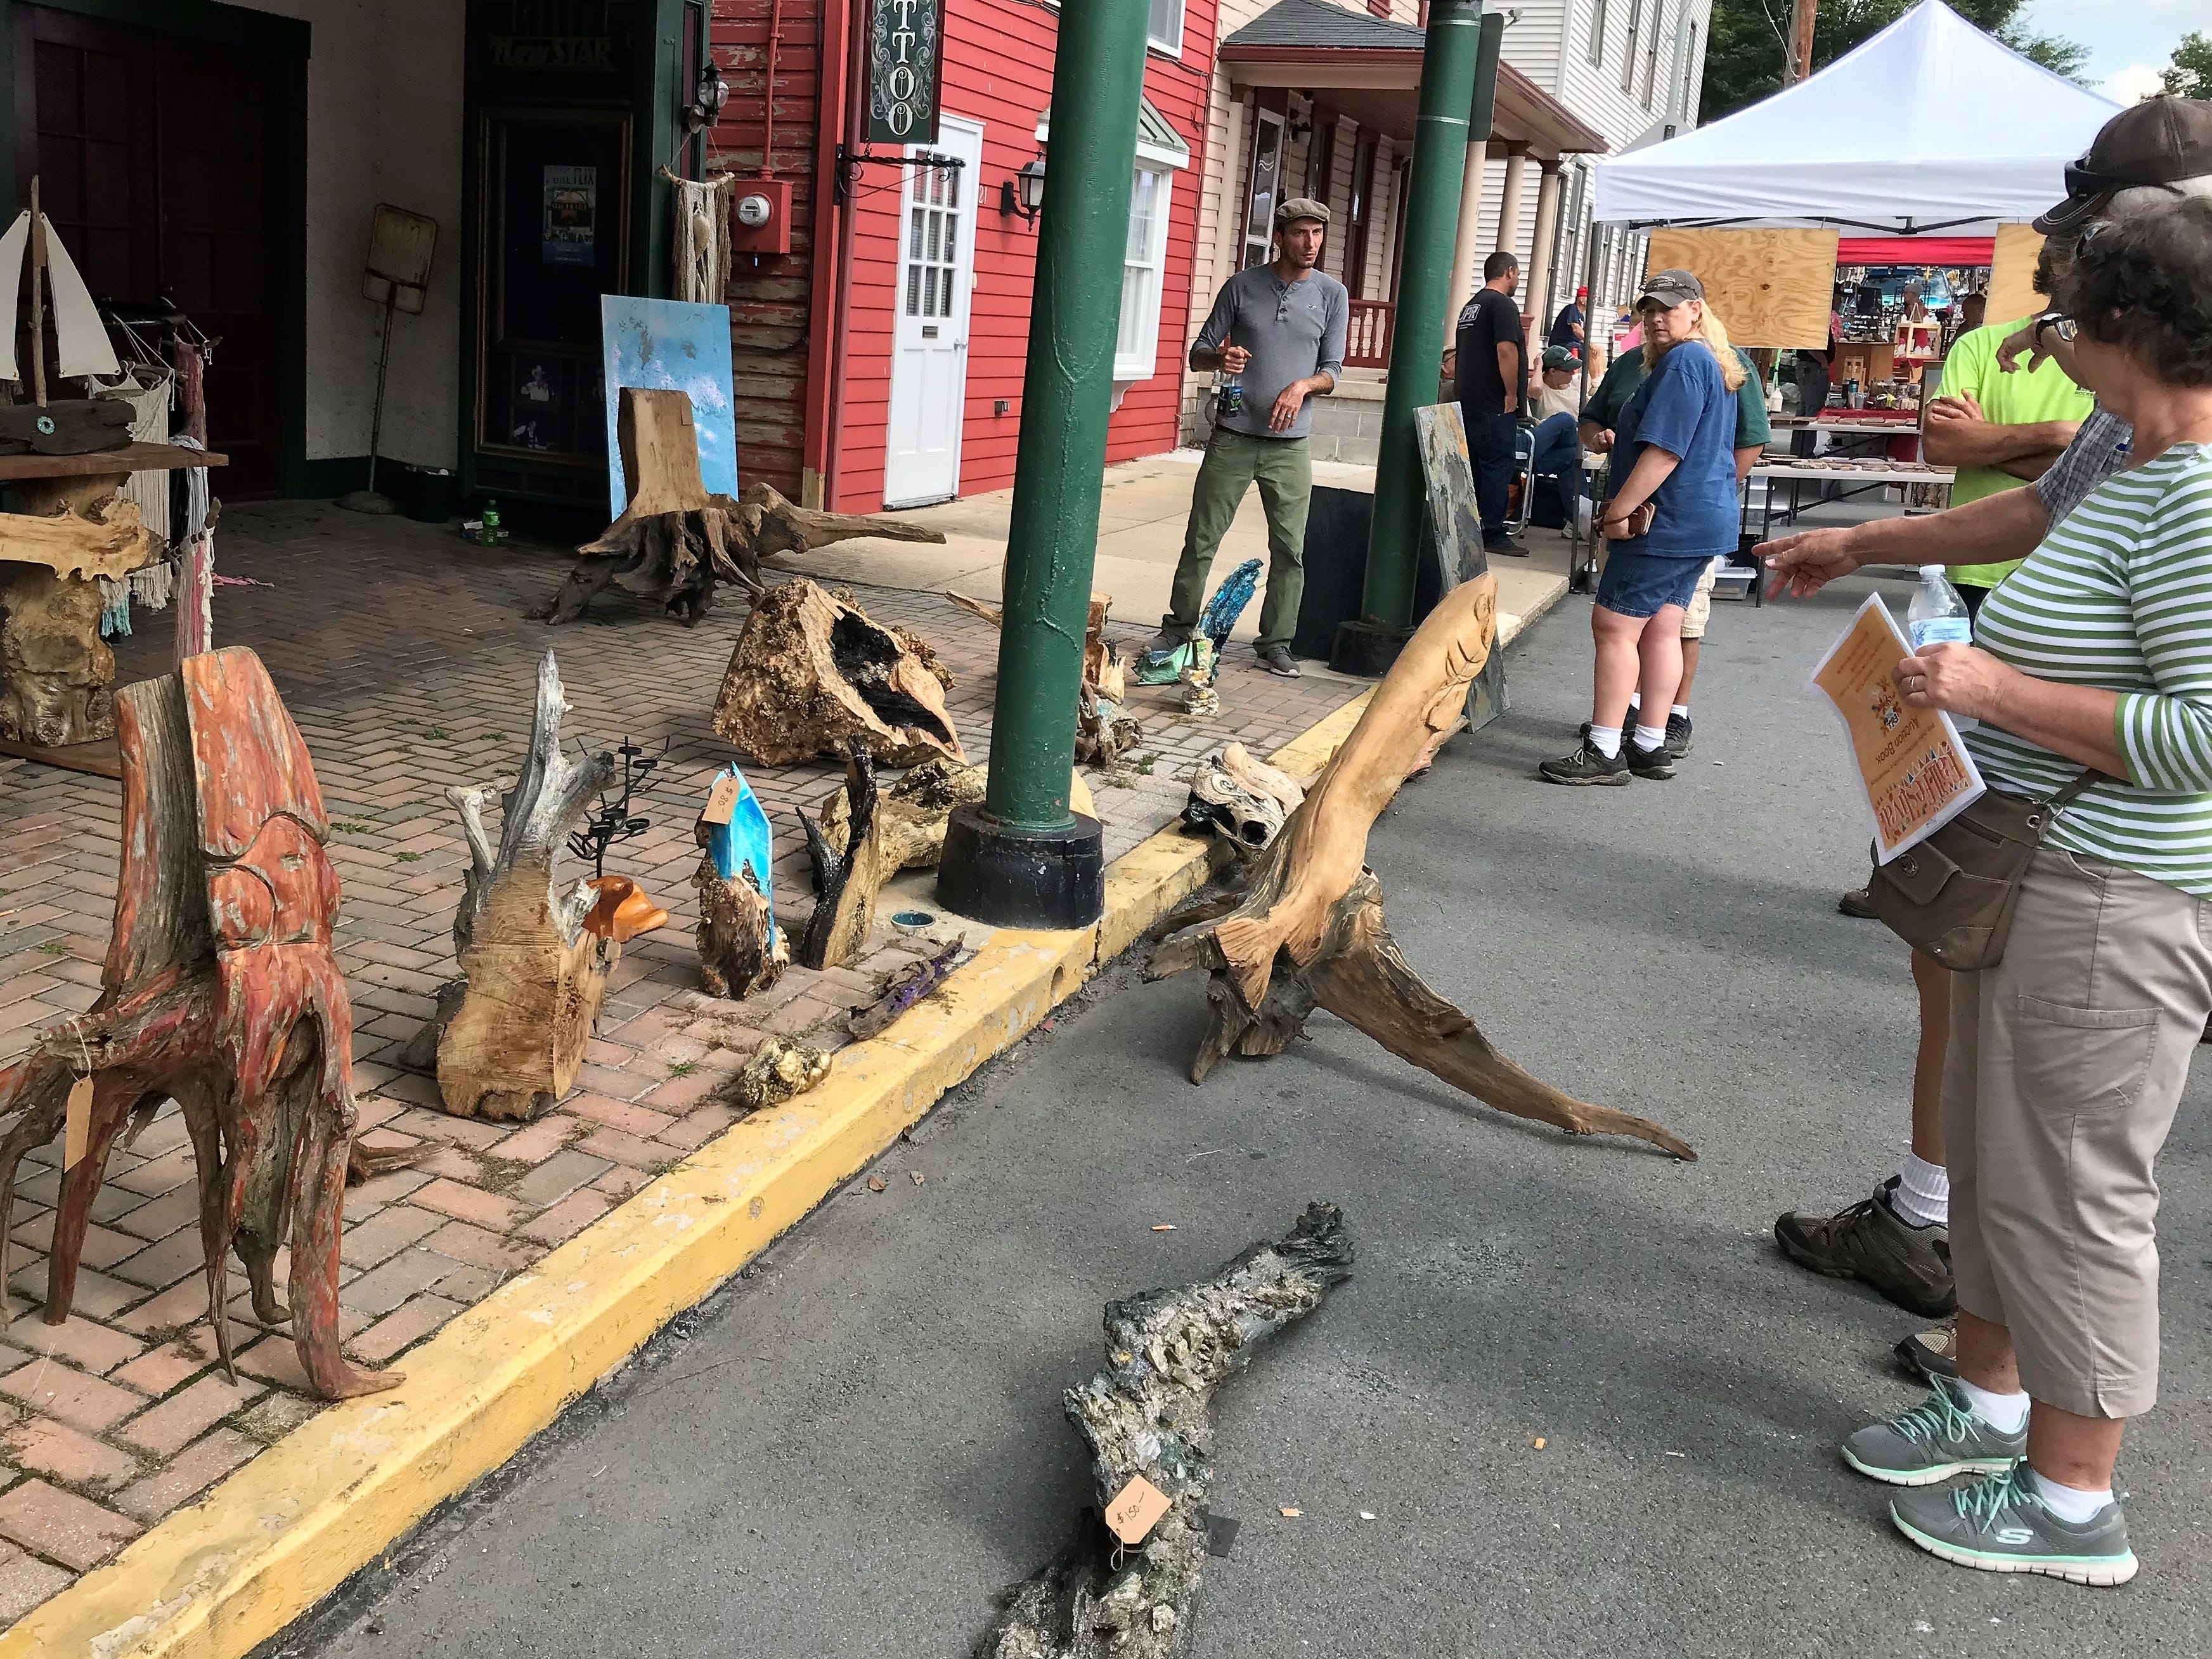 People take a look at pieces of art made from fallen branches and other wood  on Saturday, Sept. 29, 2018, at Mercersburg Townfest.